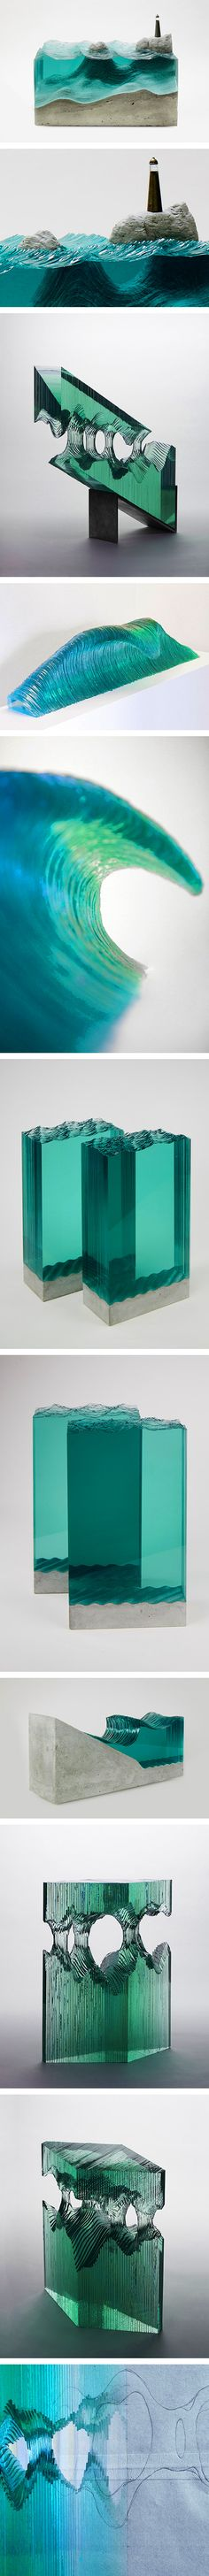 Layered Glass Table Concept Creates A CrossSection Of The Ocean - Incredible layered glass table mimics oceans depths